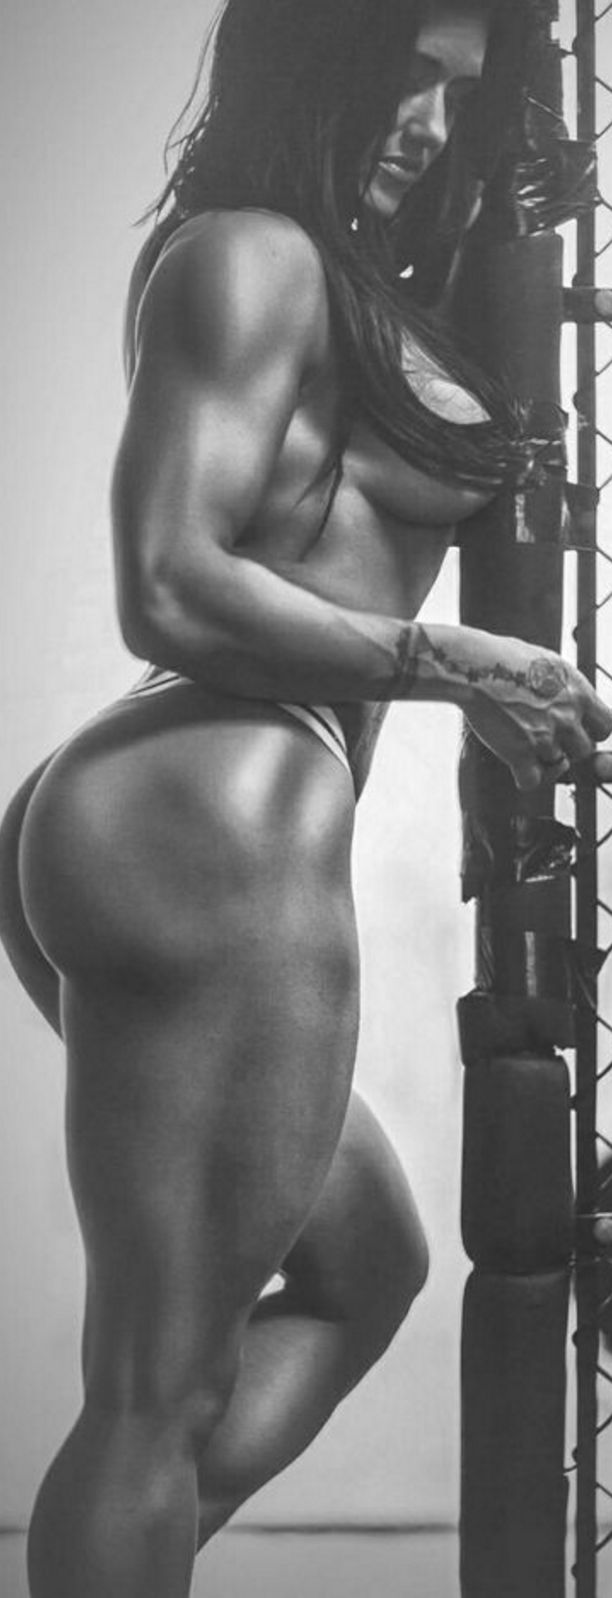 #fitness #motivation #muscle | BLACK & WHITE BODIES | Pinterest | Muscles, Motivation and Muscle girls